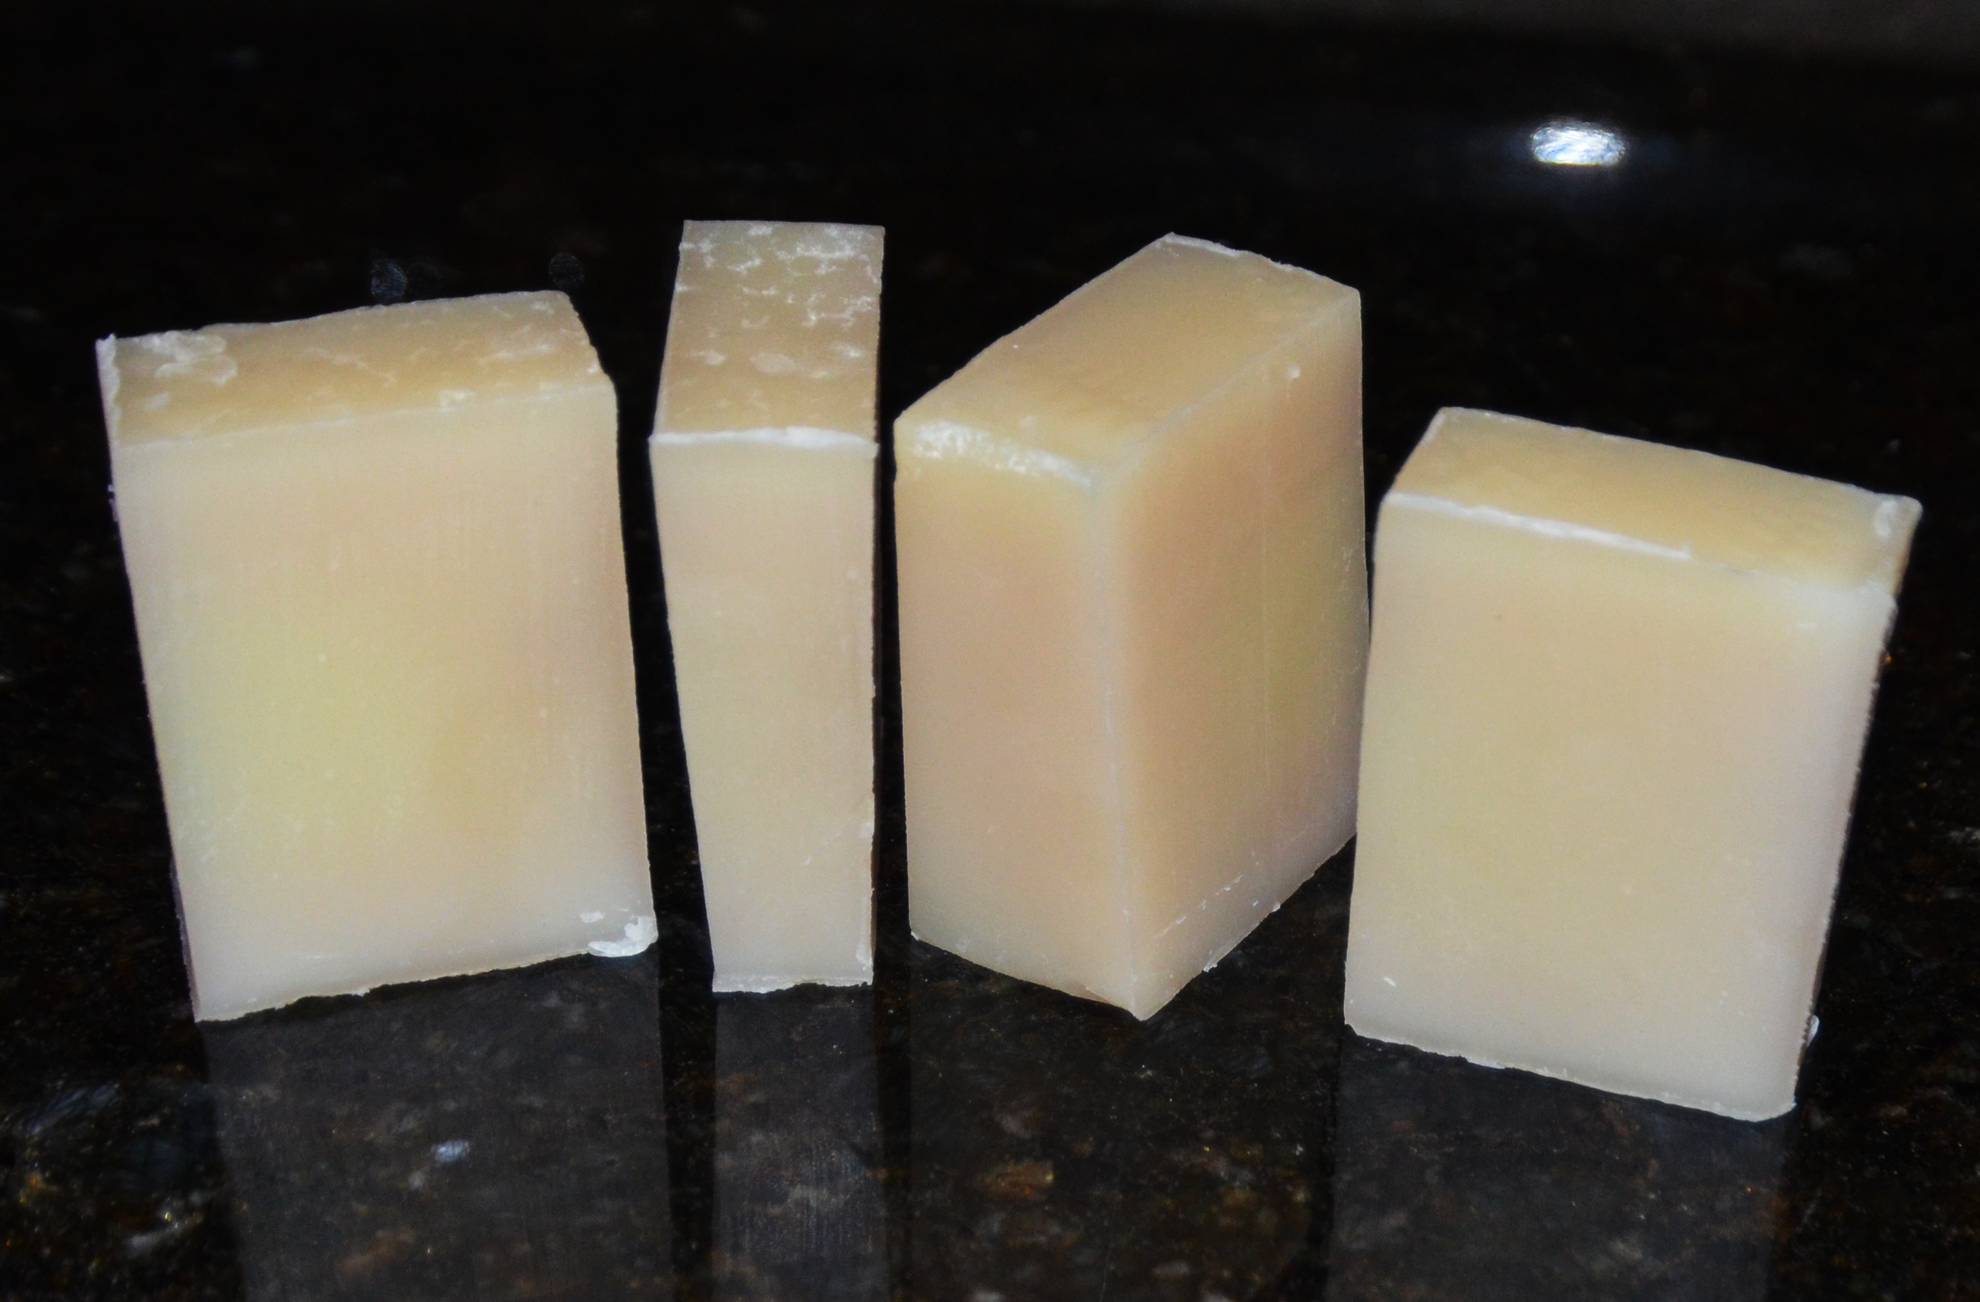 Using the Natural Soap